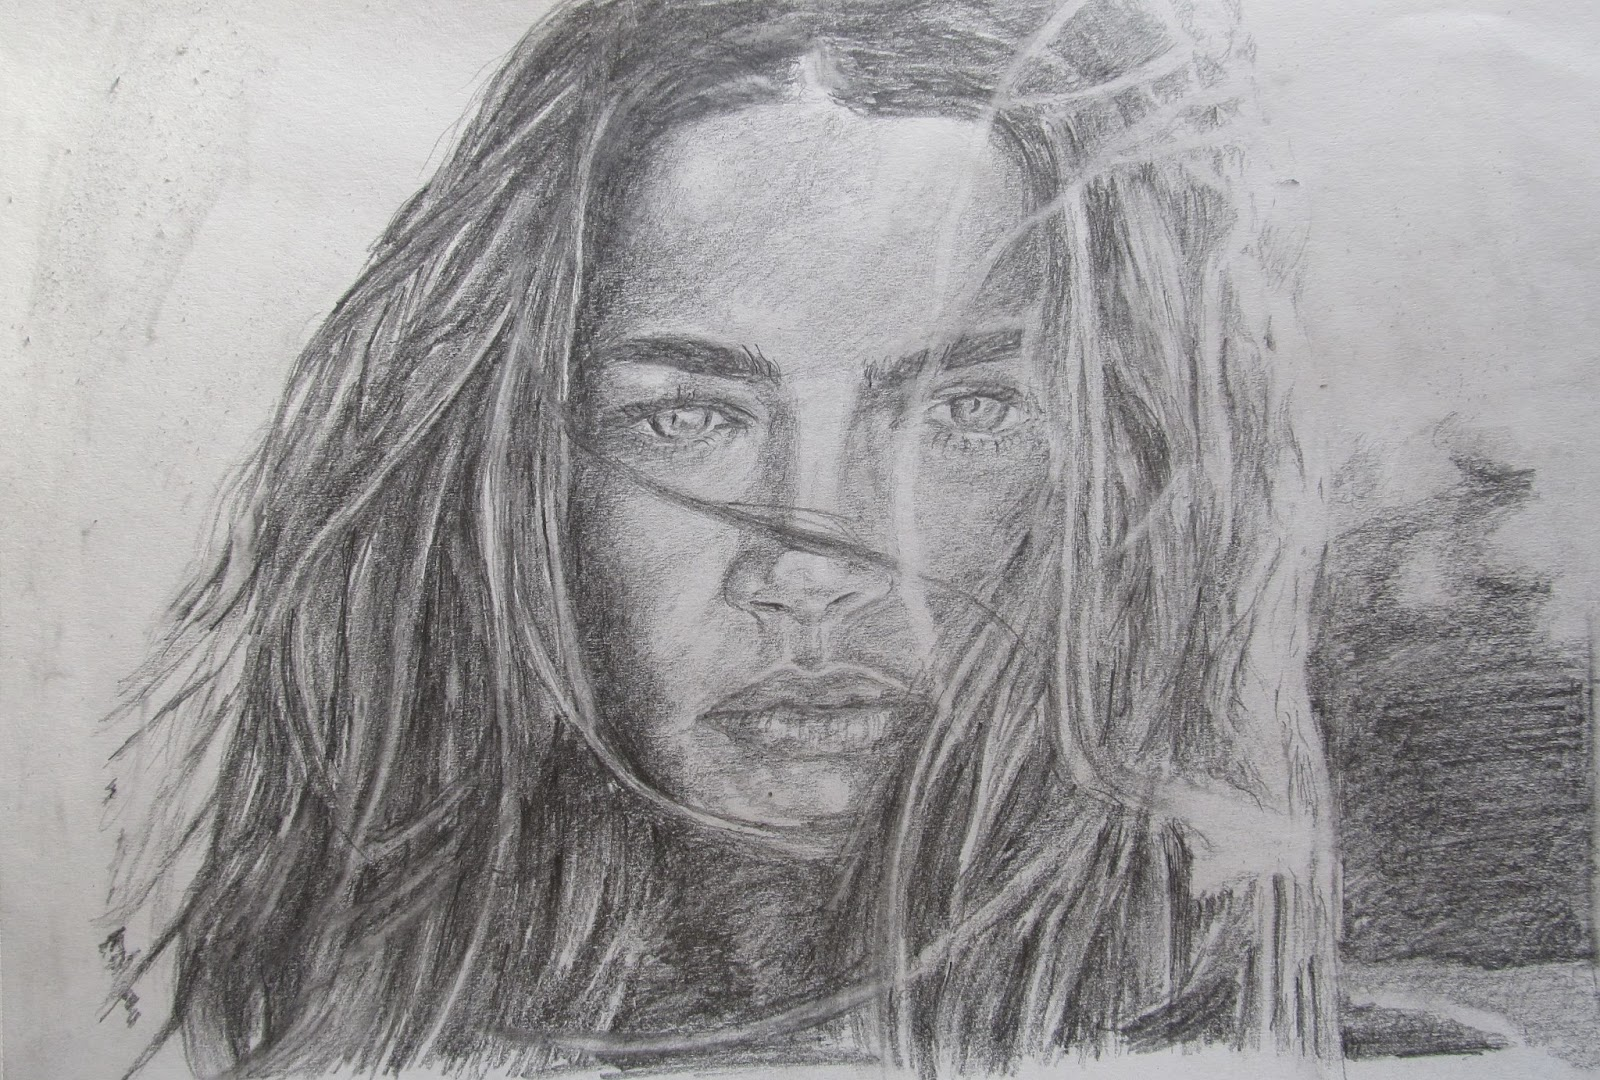 This a pencil sketch of denise richards more information on this celebrity can be found on wikipedia on the below link